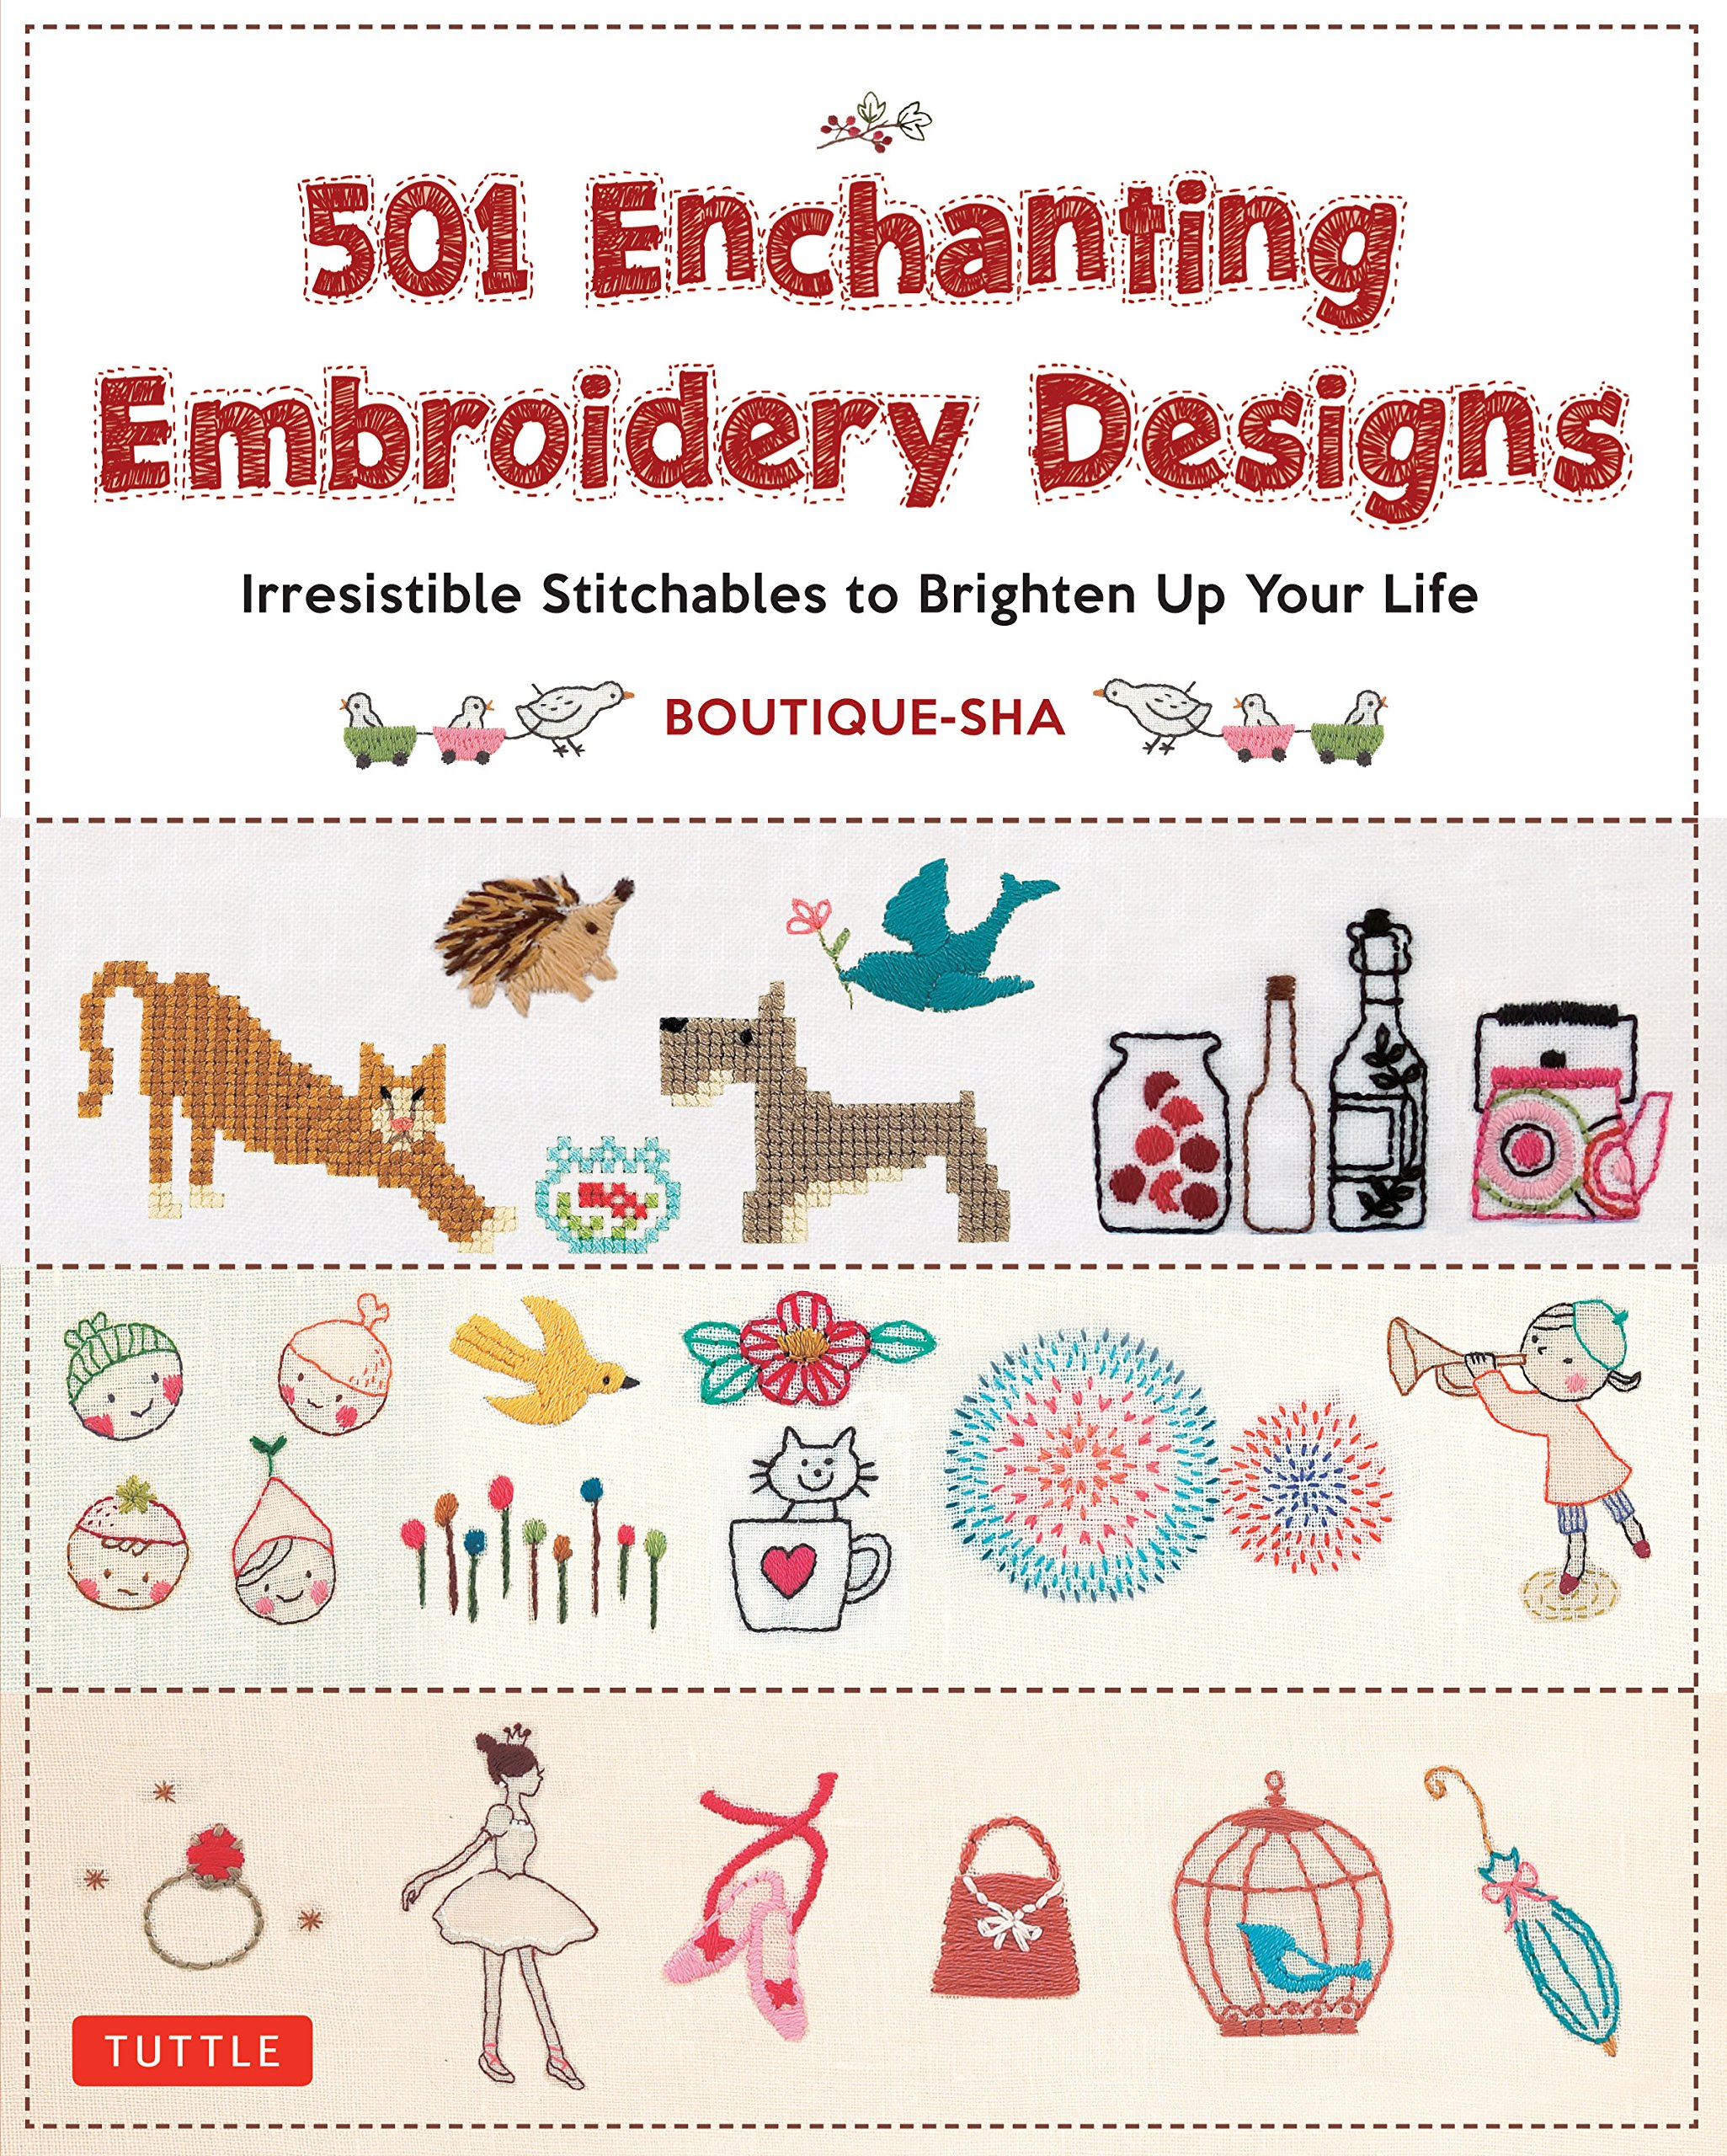 501-enchanting-embroidery-designs-irresistible-stitchables-to-brighten-up-your-life